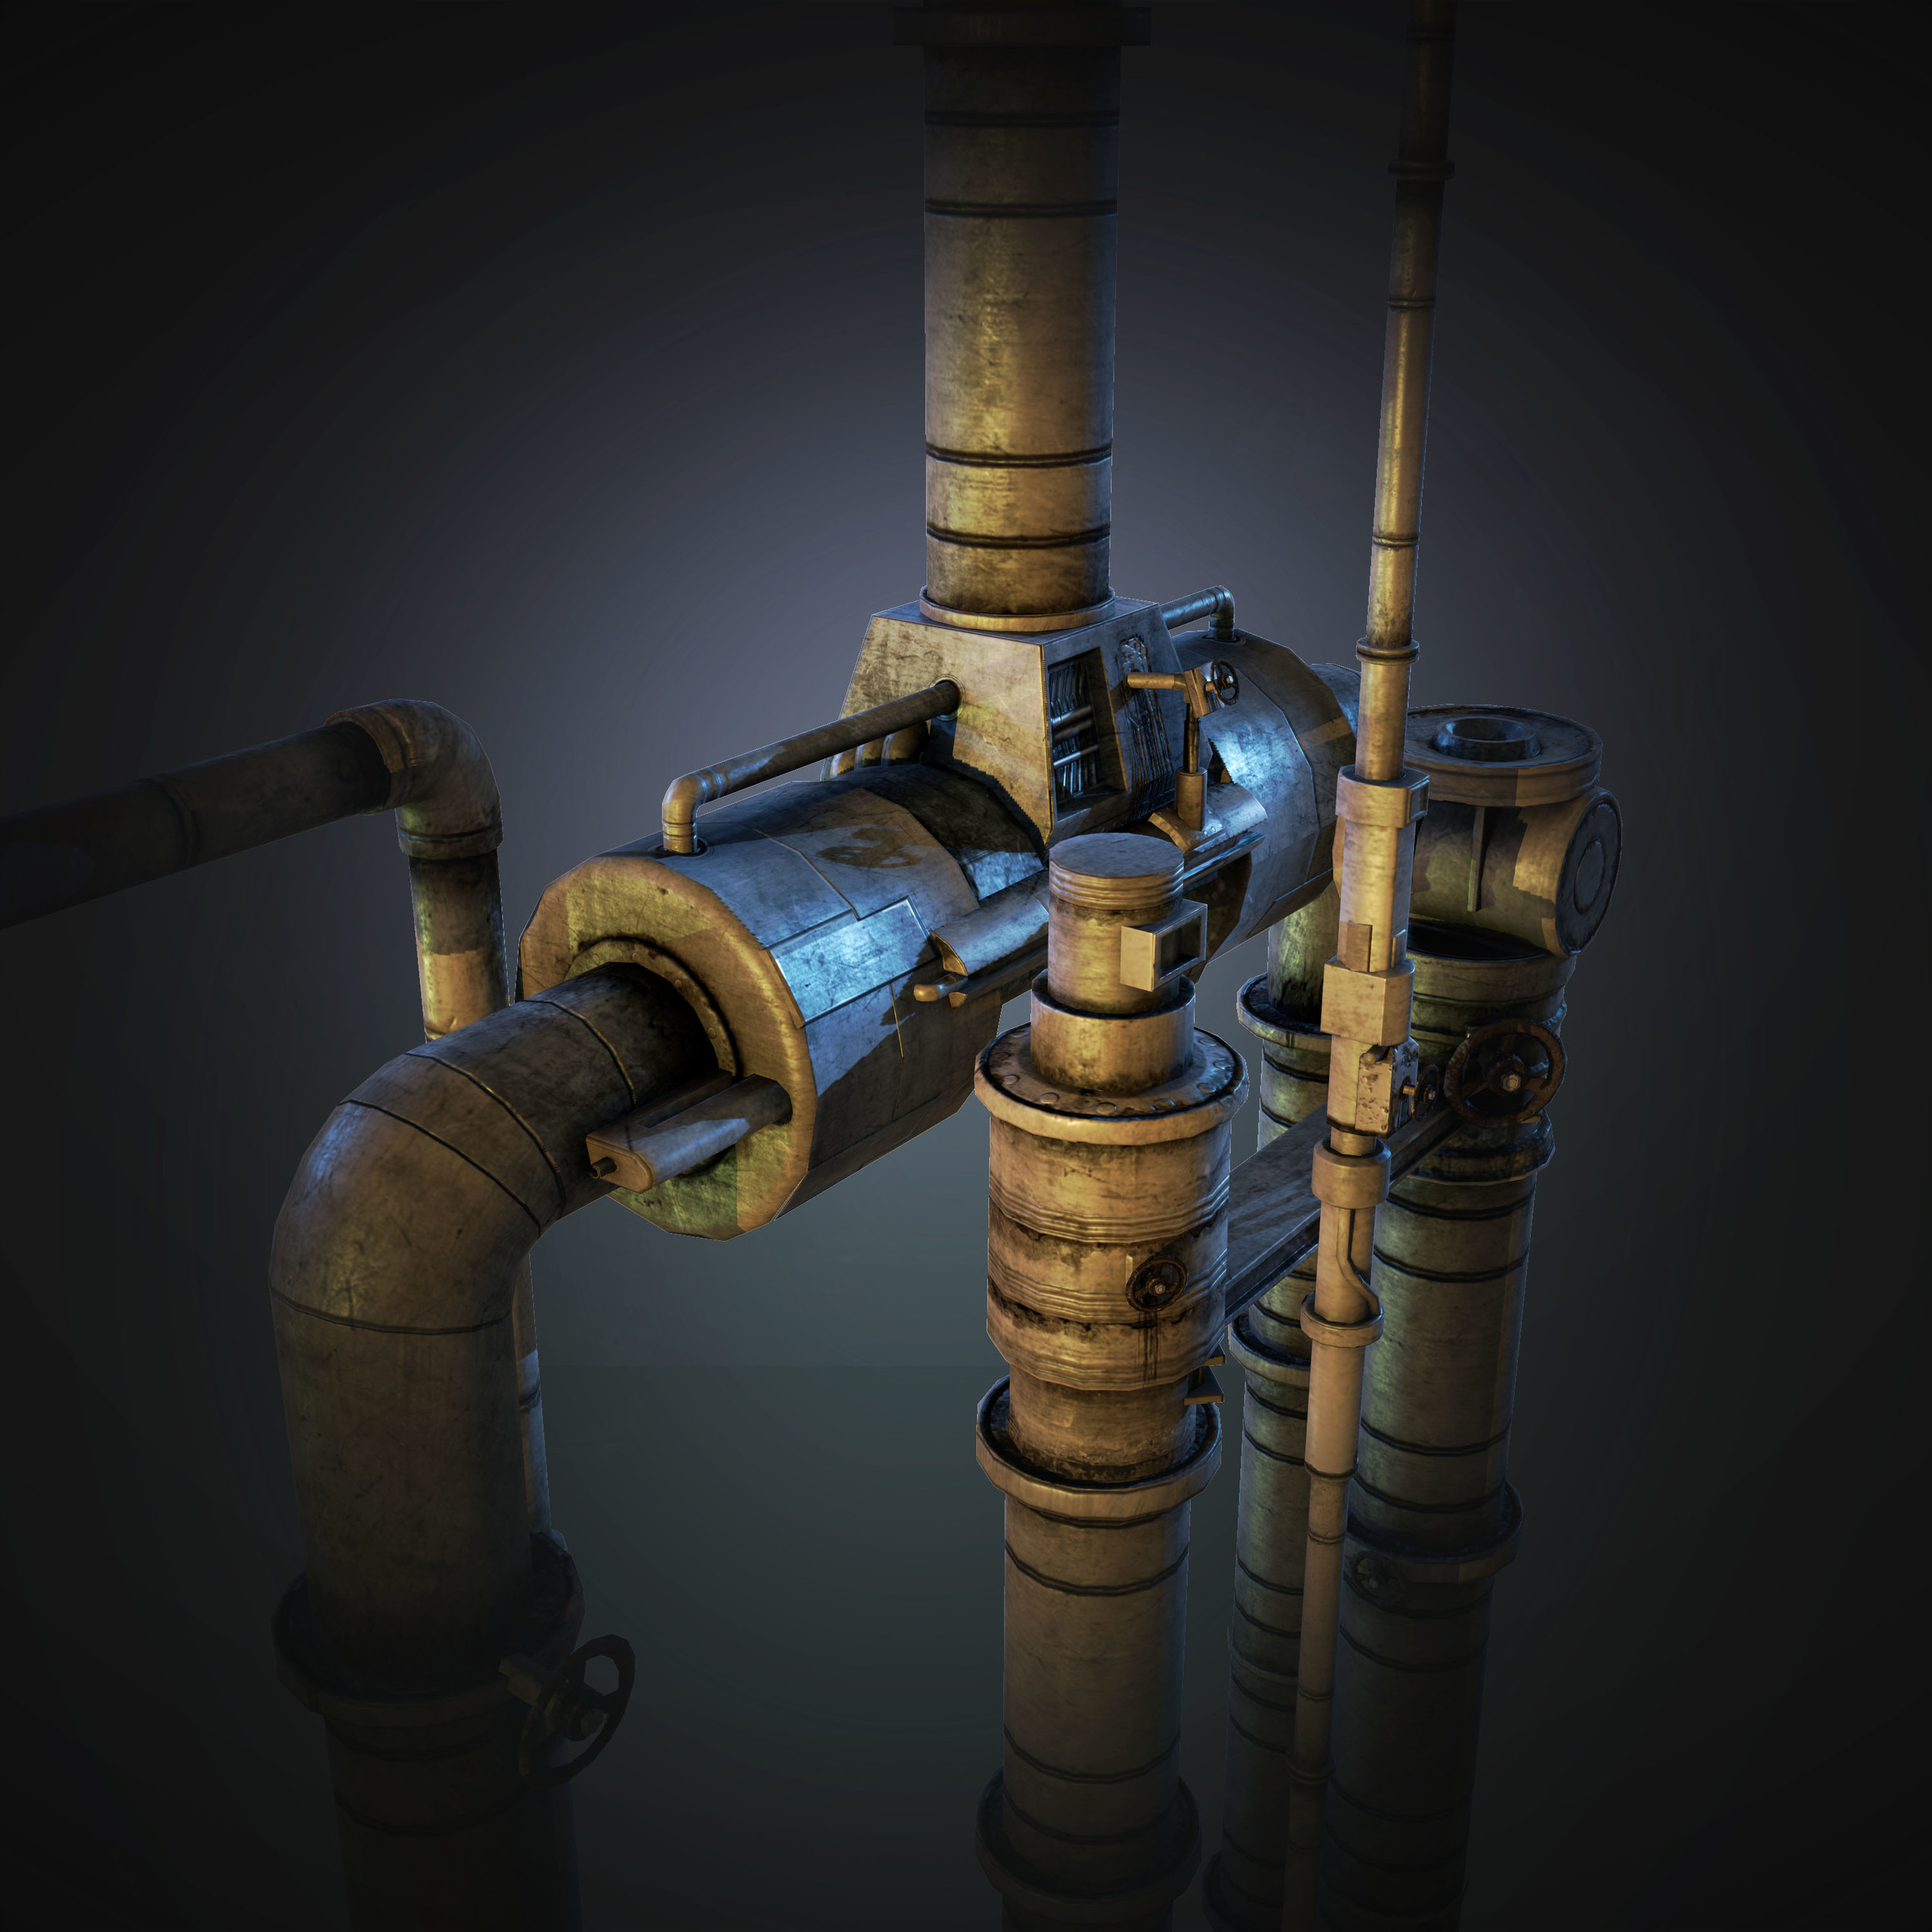 Pipes_Lowpoly_Angled3.jpg